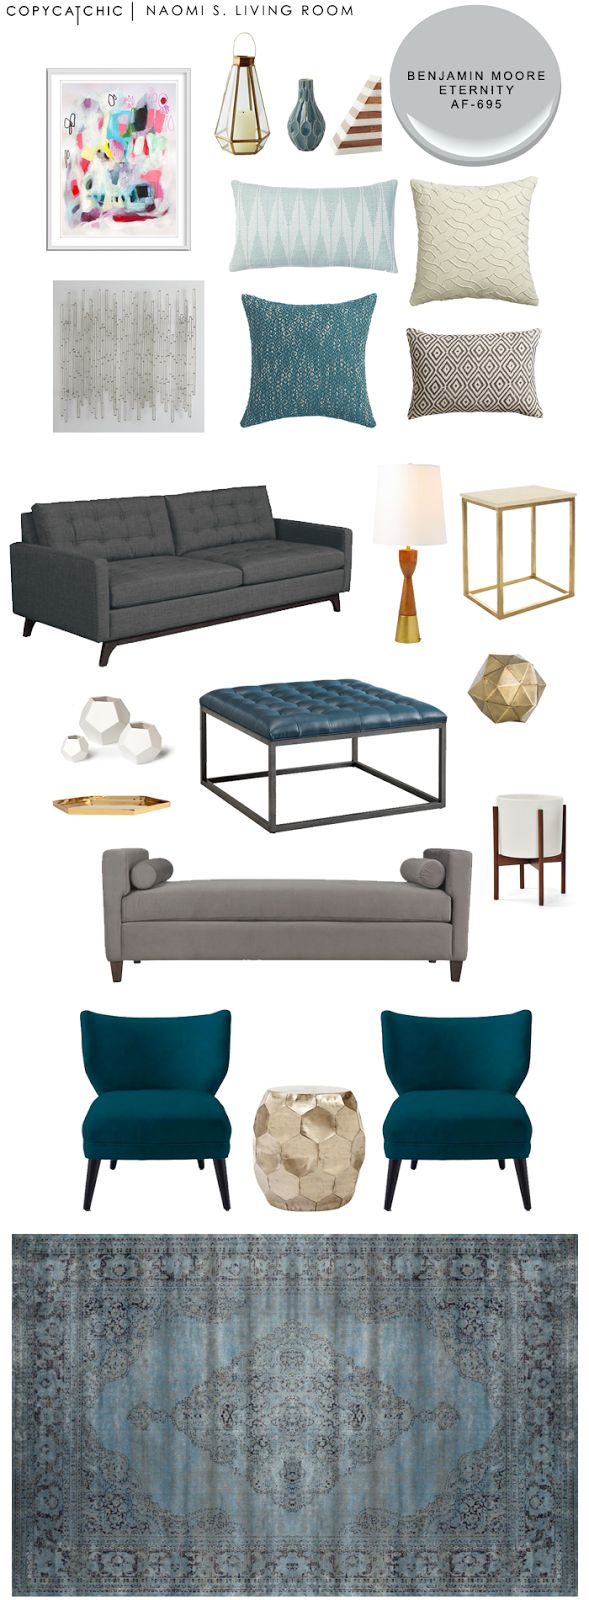 Copy Cat Chic Clients: Naomi S. A large living room with accents of turquoise and gold